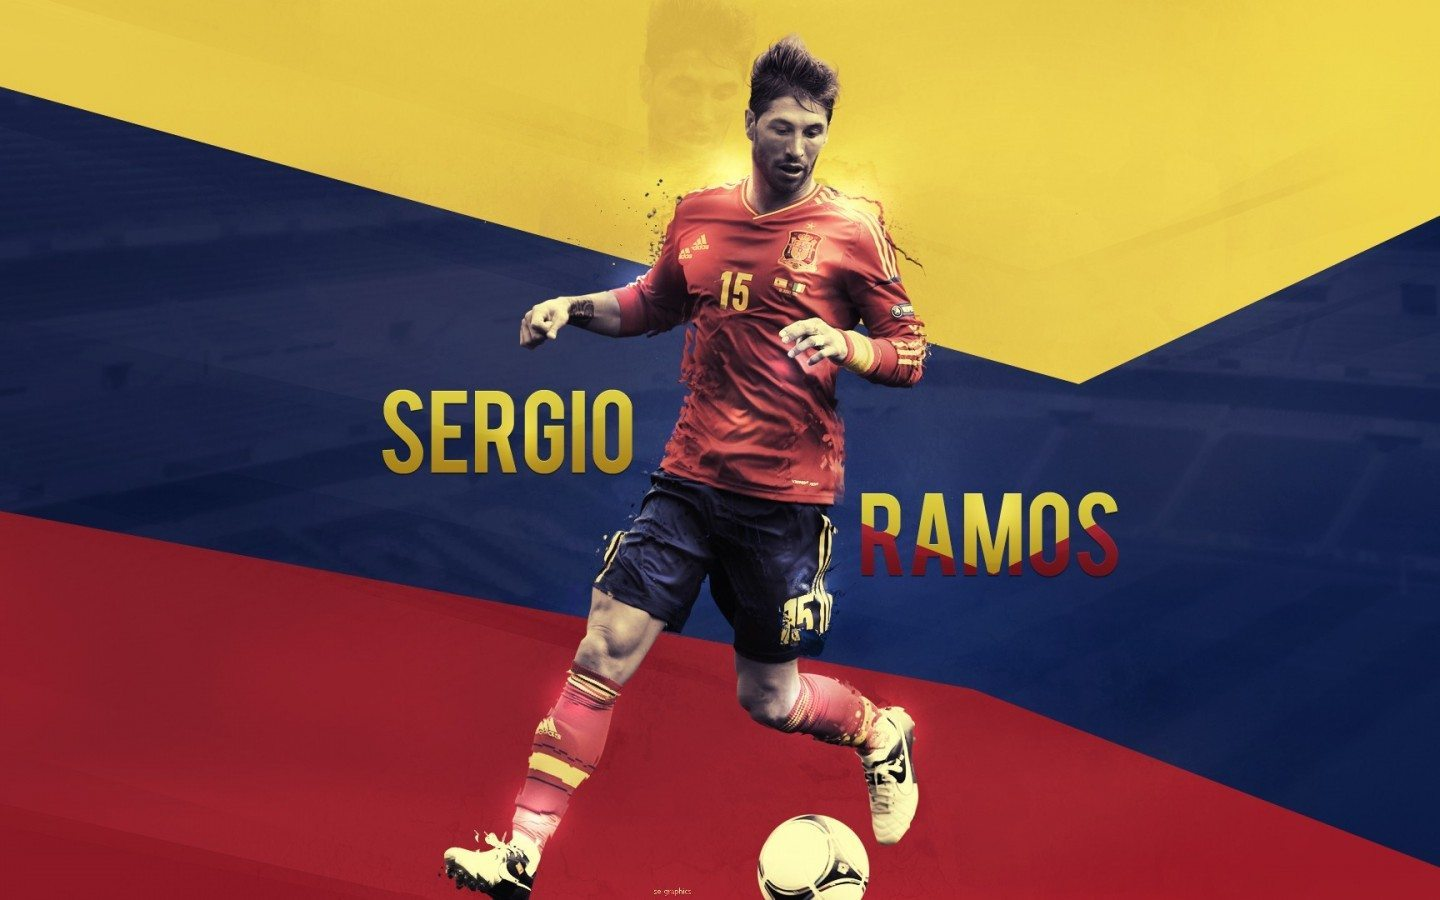 National Team Sergio Ramos Hd Wallpaper